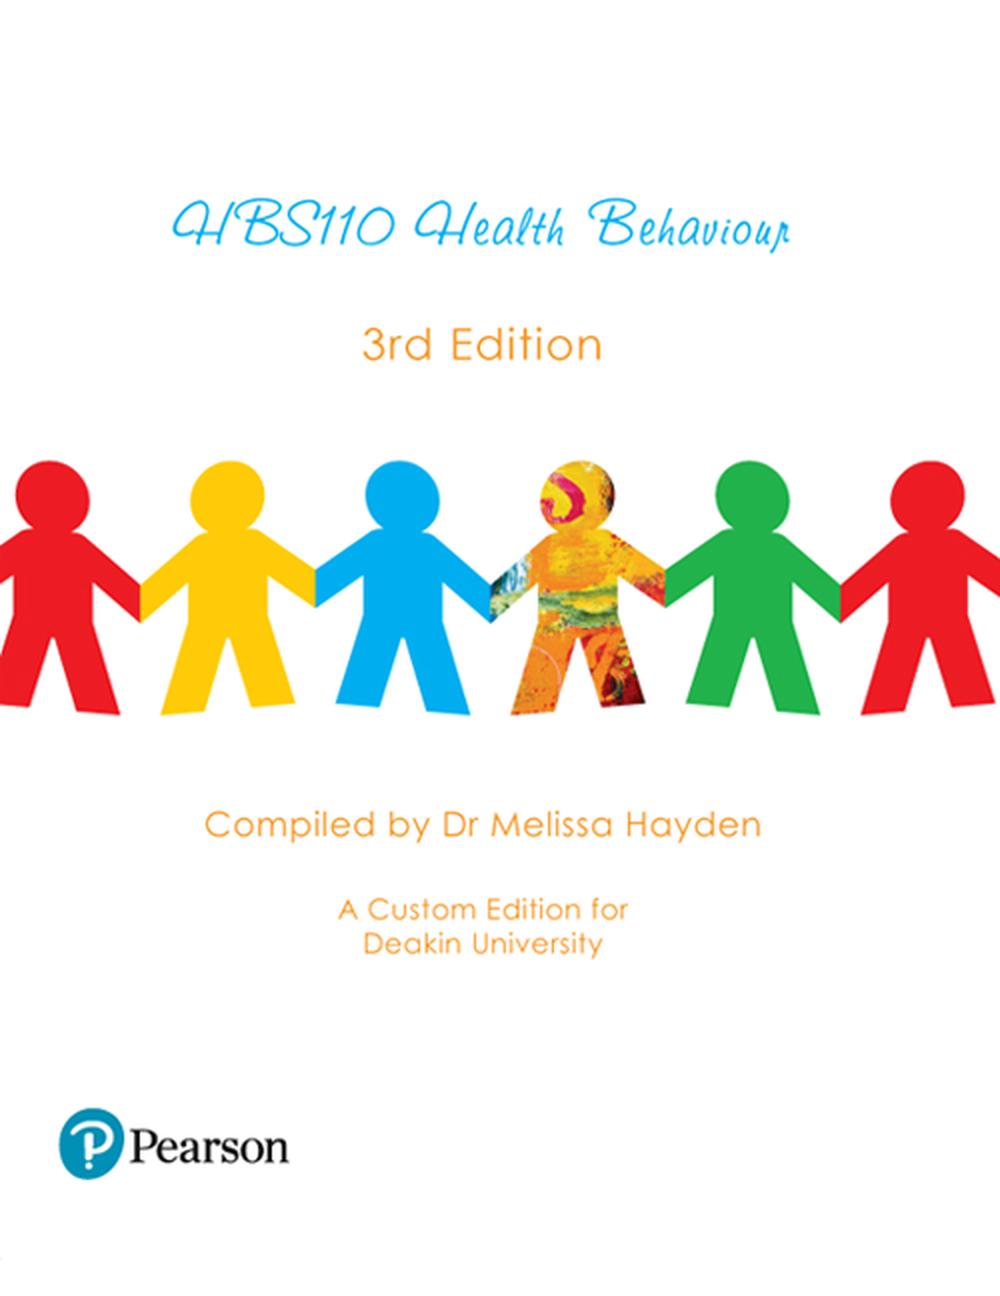 Health Behaviour HBS110, 3rd Edition by Rebecca Donatelle, Paperback,  9780655700494